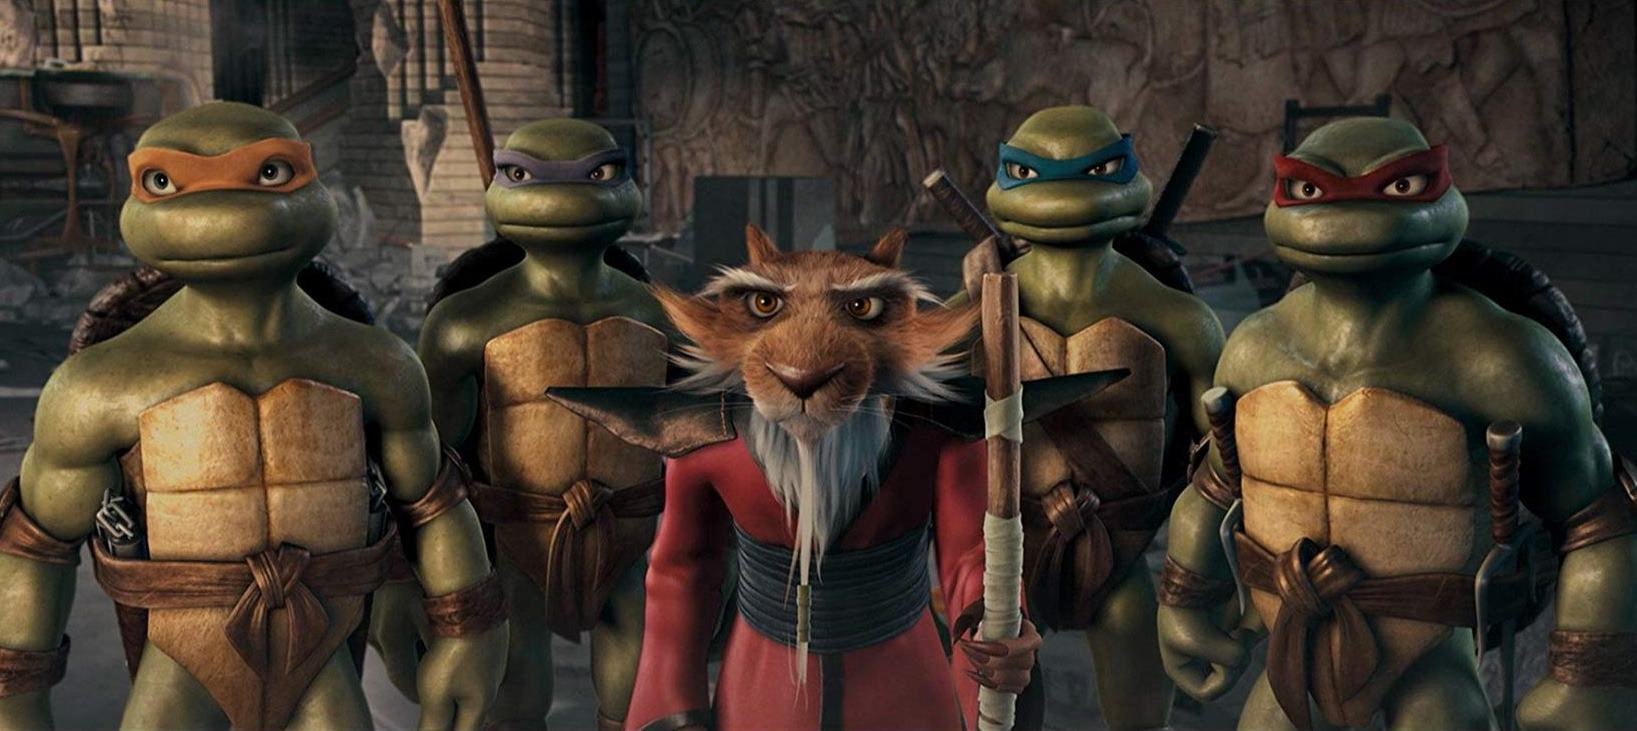 An animated revival of the Teenage Mutant Ninja Turtles - (l to r) Michelangelo, Donatello, Splinter, Leonardo and Raphael in TMNT (2007)